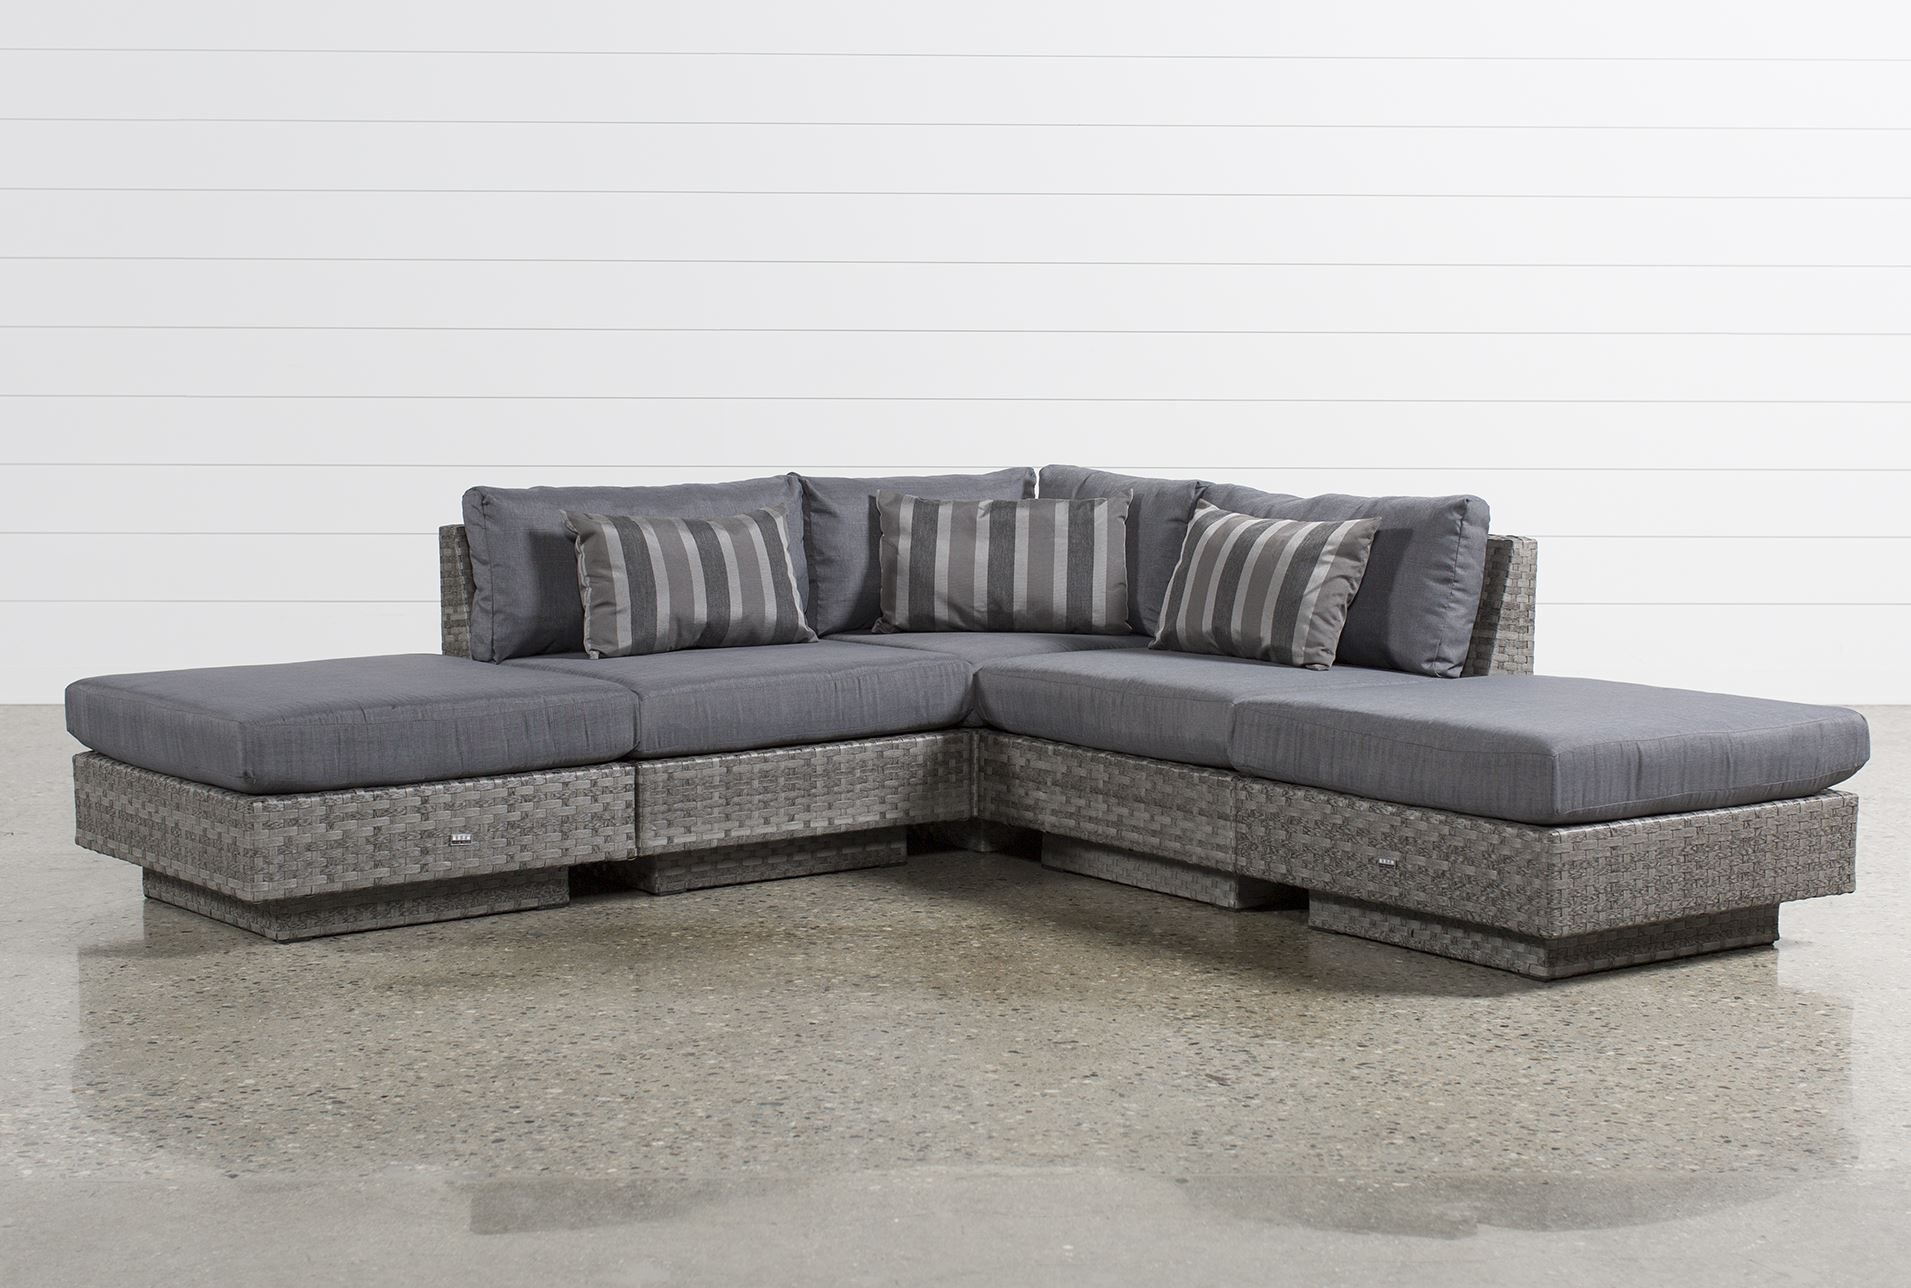 3 Piece Sectional Sofa Dimensions | Baci Living Room with regard to Malbry Point 3 Piece Sectionals With Raf Chaise